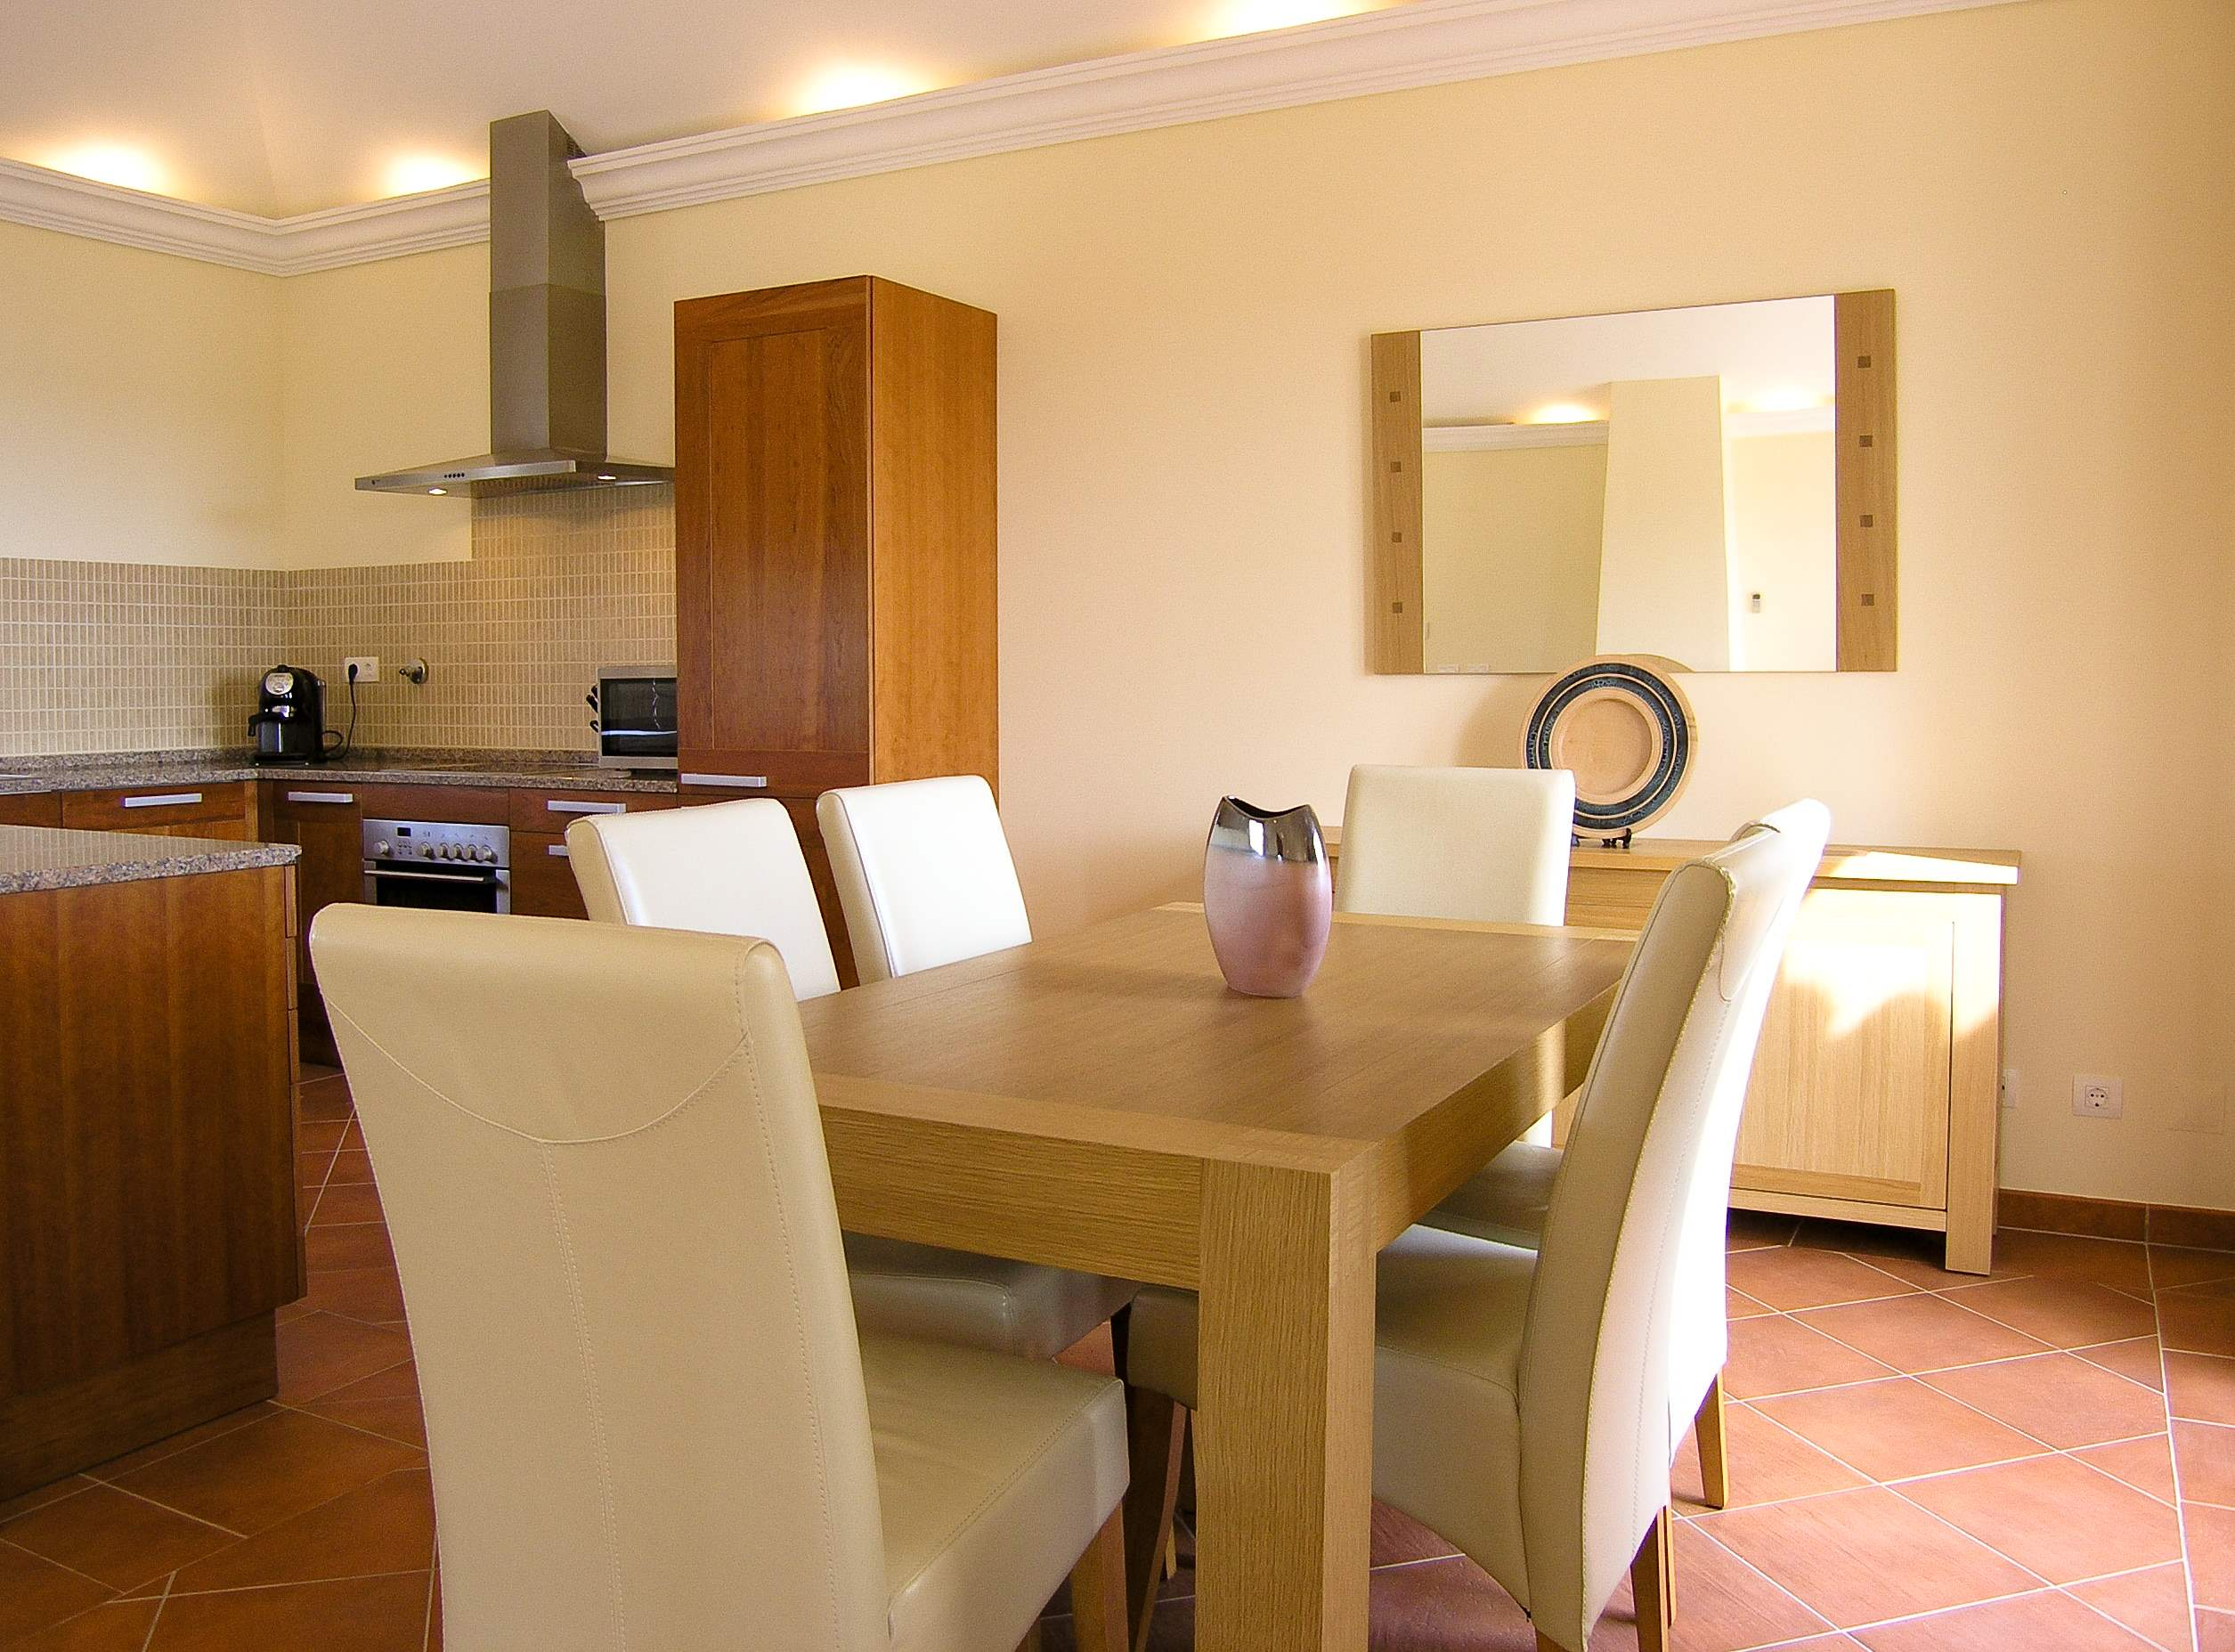 Martinhal Vilas Mimosa Two Bedroom, 2 bedroom villa in Martinhal Sagres, Algarve Photo #9